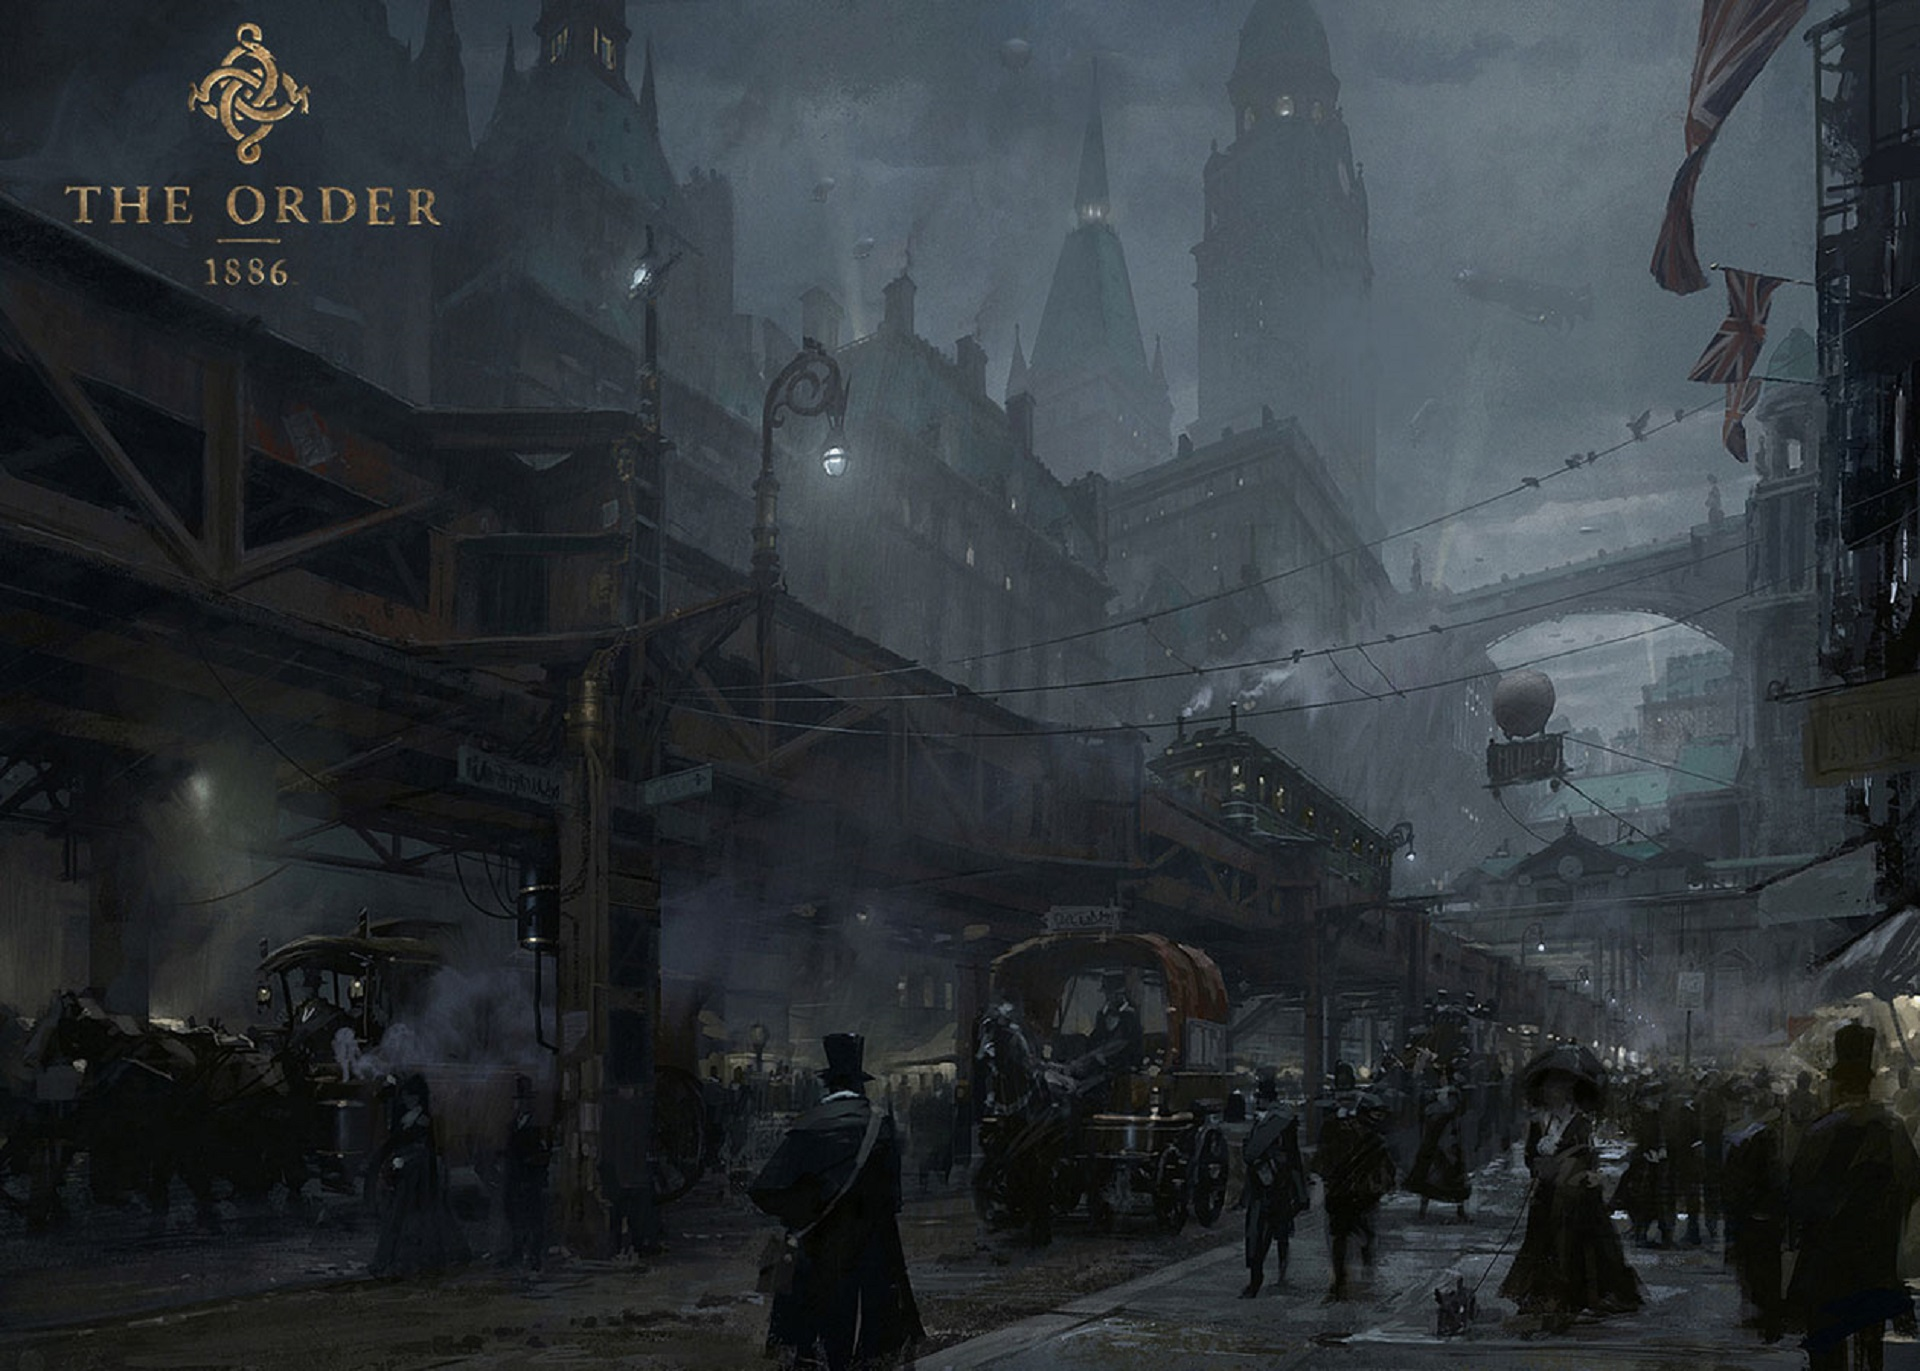 The Order 1886 Wallpaper Mayfair Street Scene Concept Artwork PS4